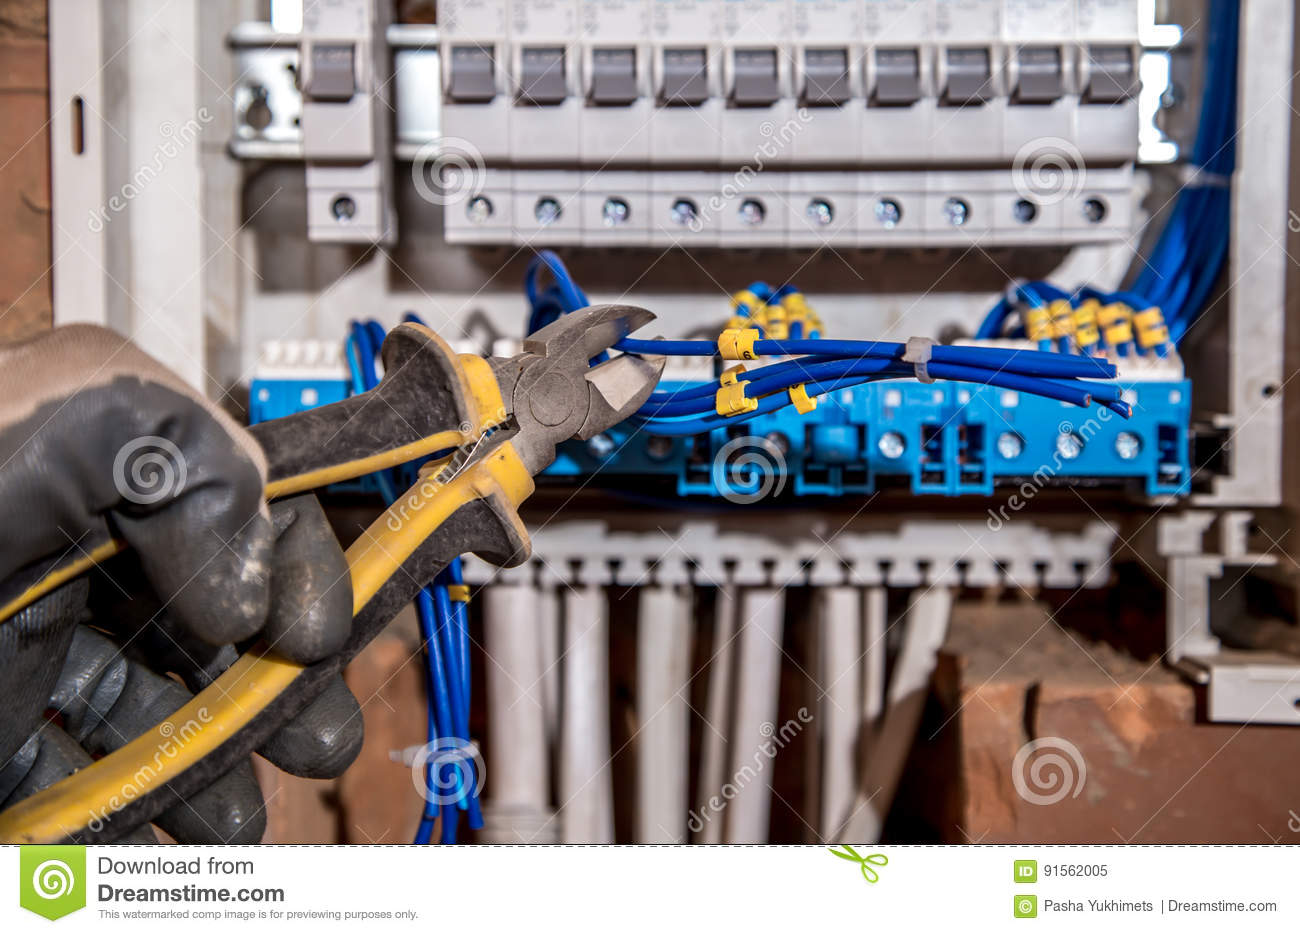 The Assembly Of Electrical Panel Electrician Job A Robot With Circuit Breaker Wiring Download Wires And